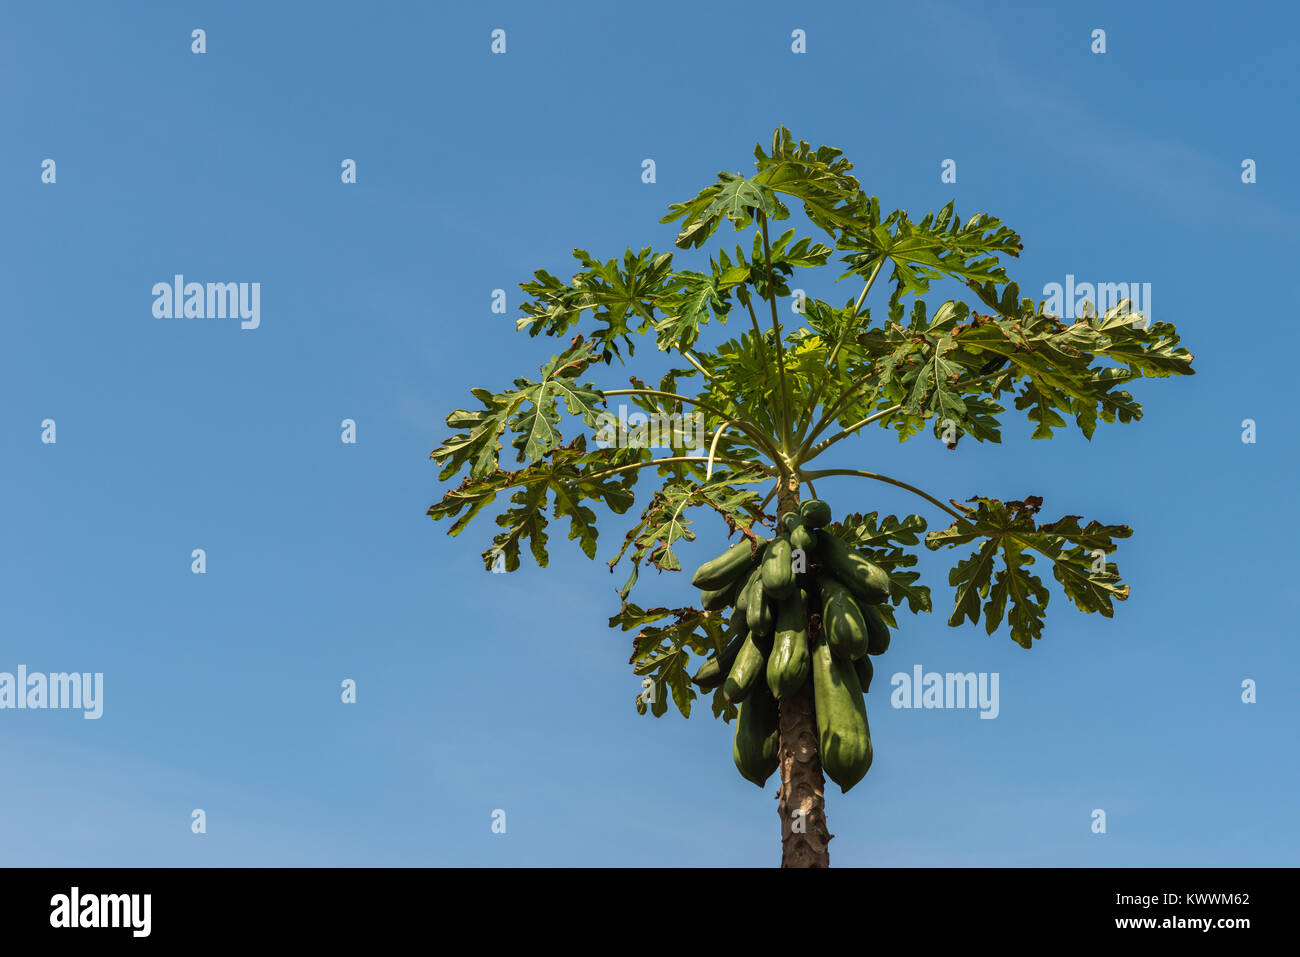 Papaya tree and fruits, farming in Anloga, Volta Region, Ghana, Africa - Stock Image